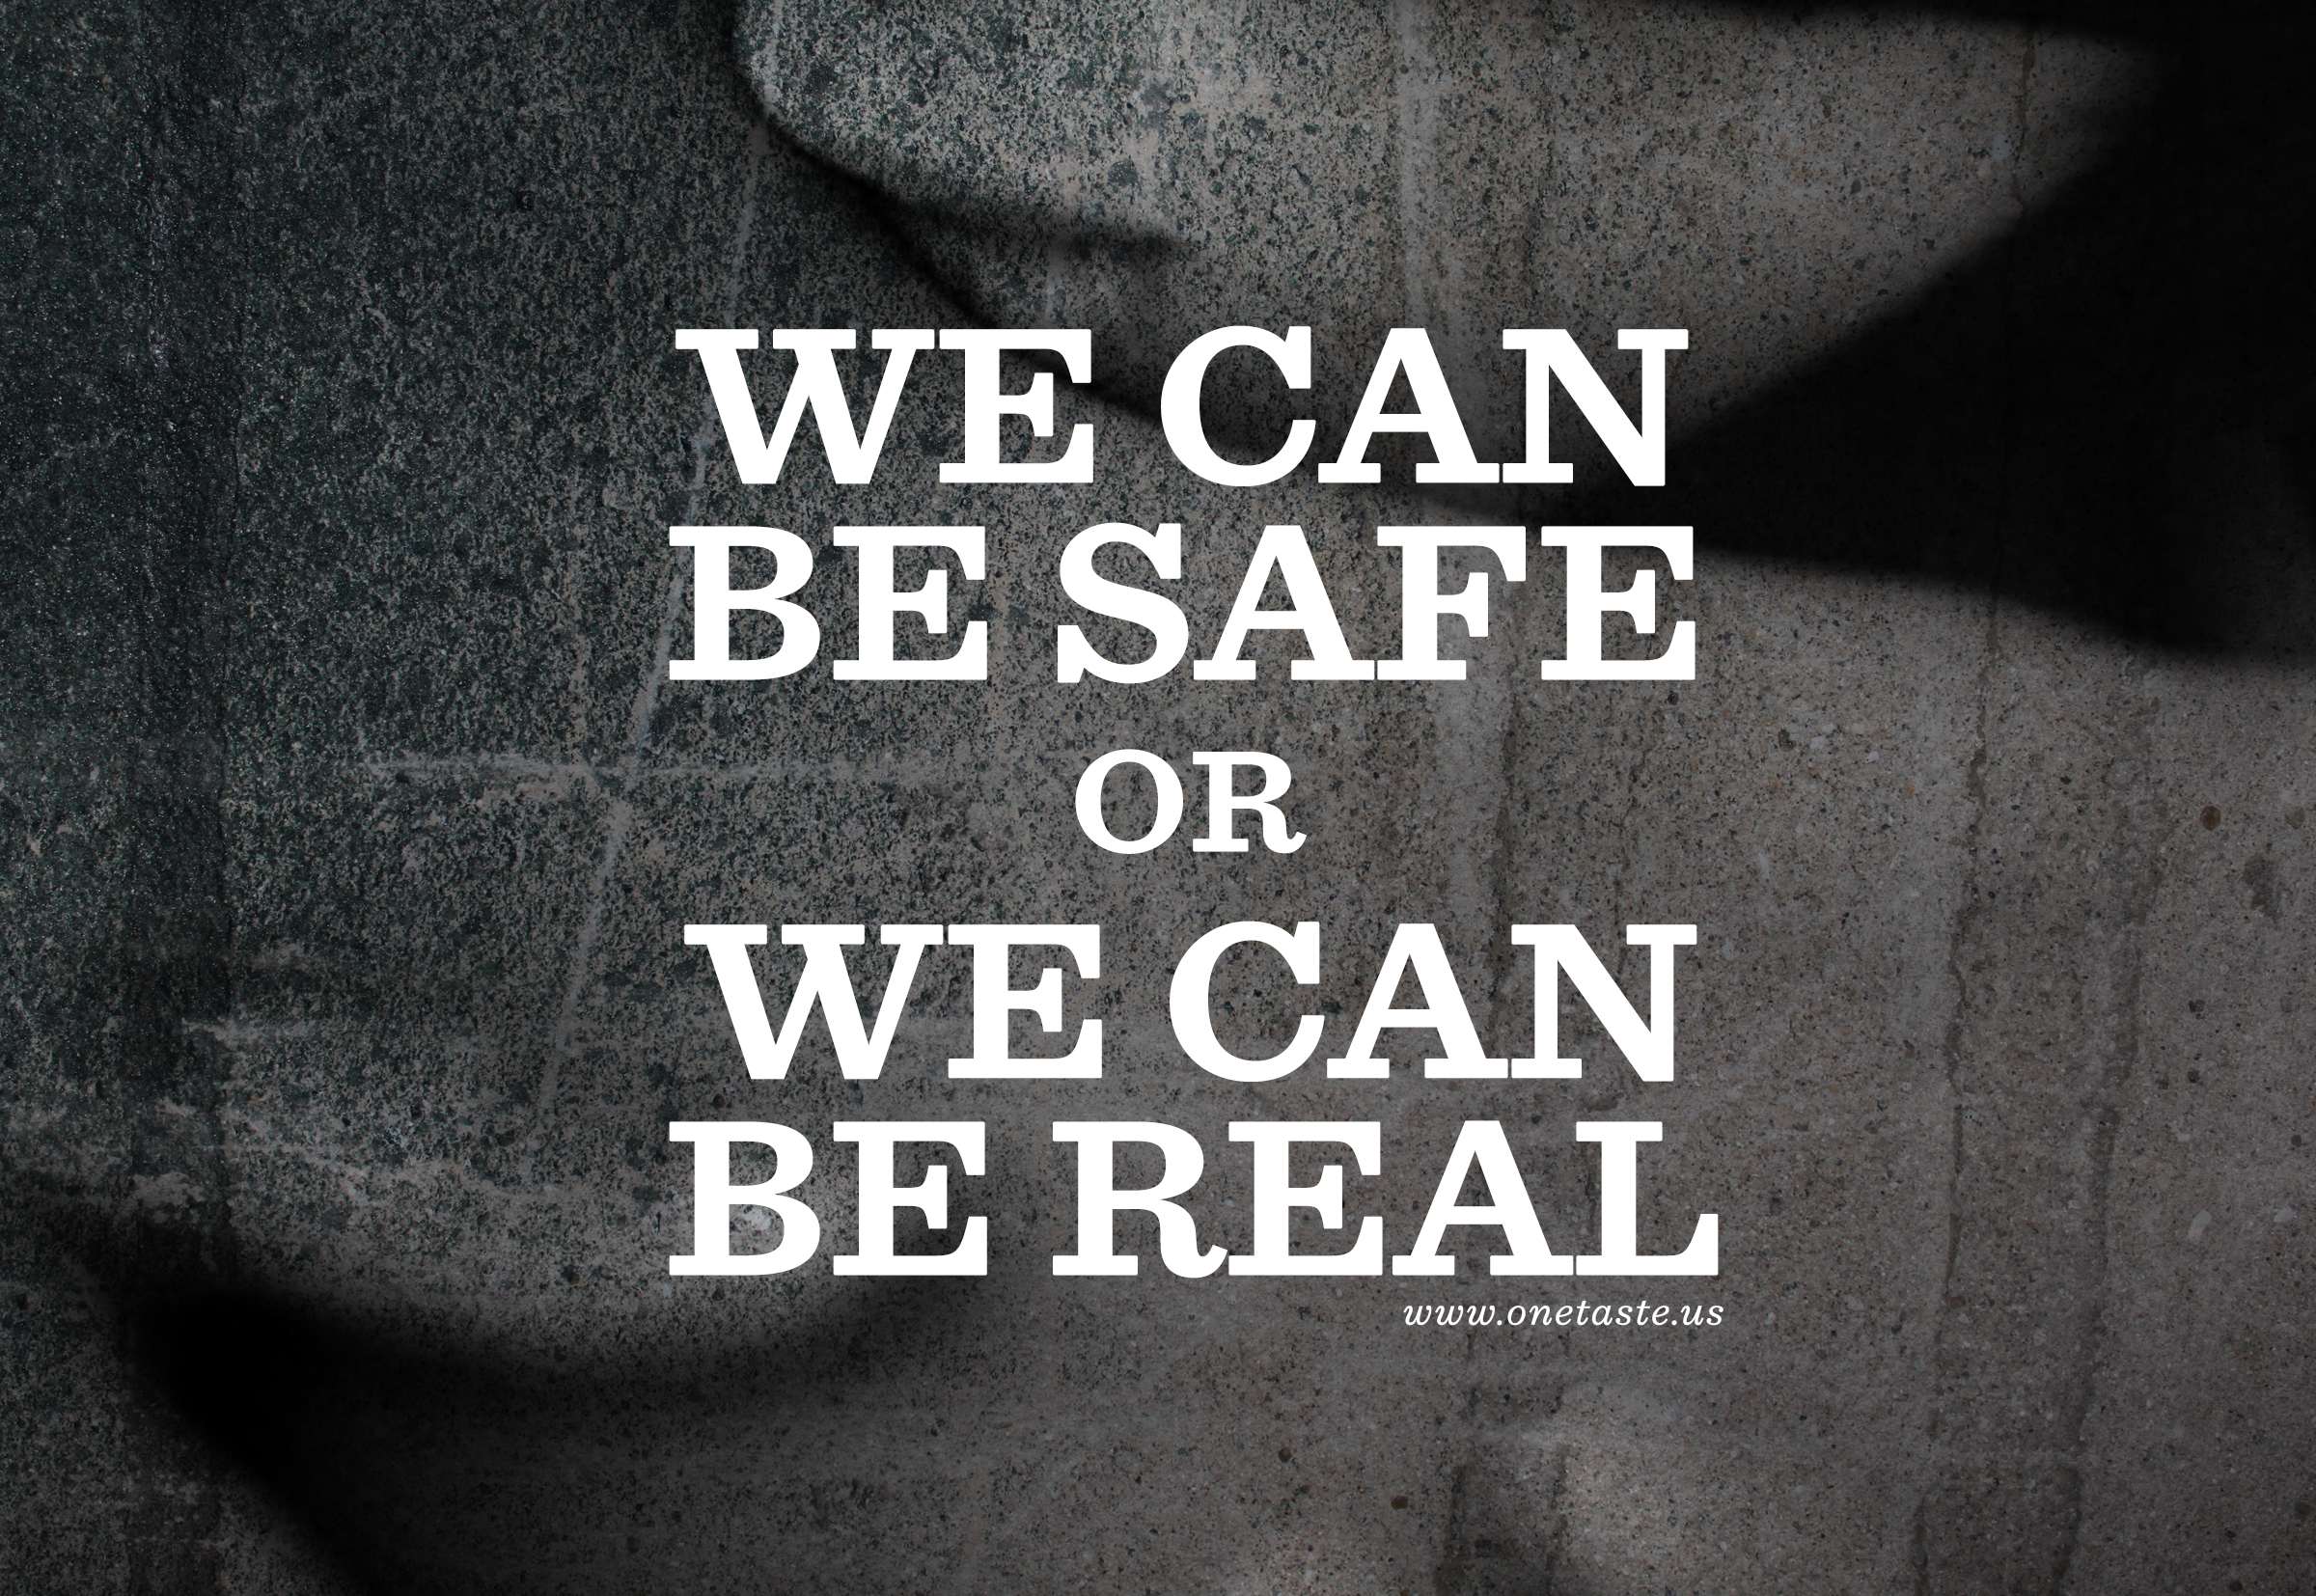 We can be safe or we can be real.